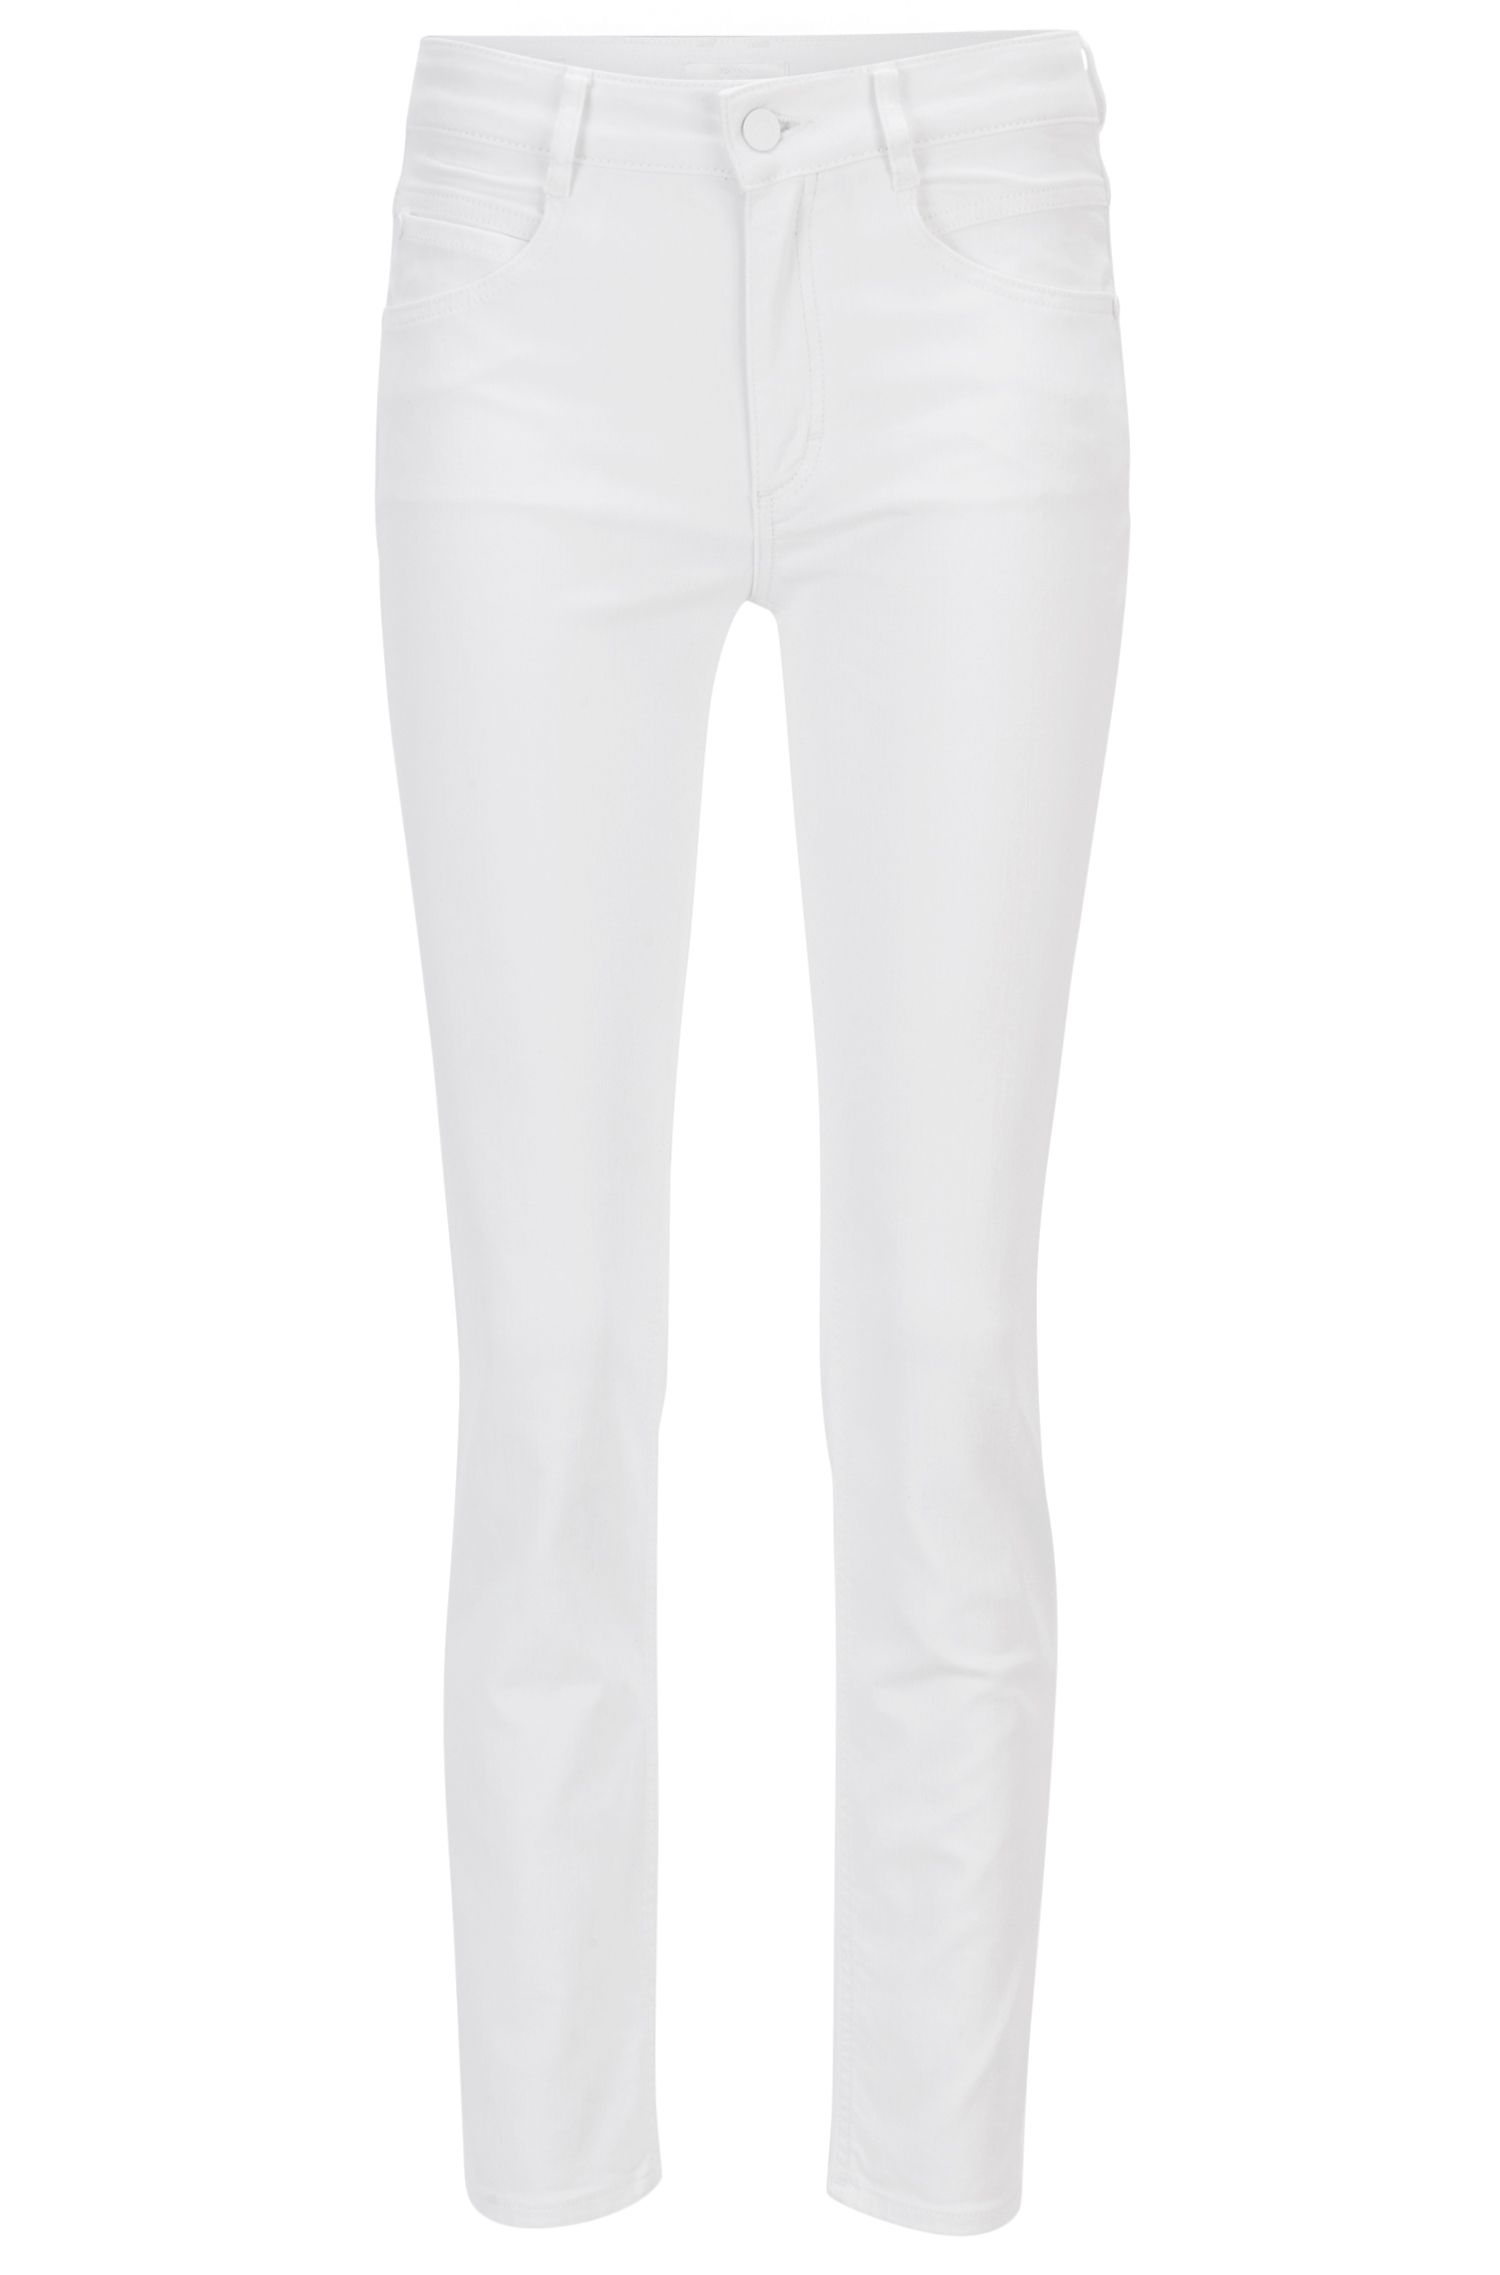 Kortere regular-fit jeans van comfortabel stretchdenim